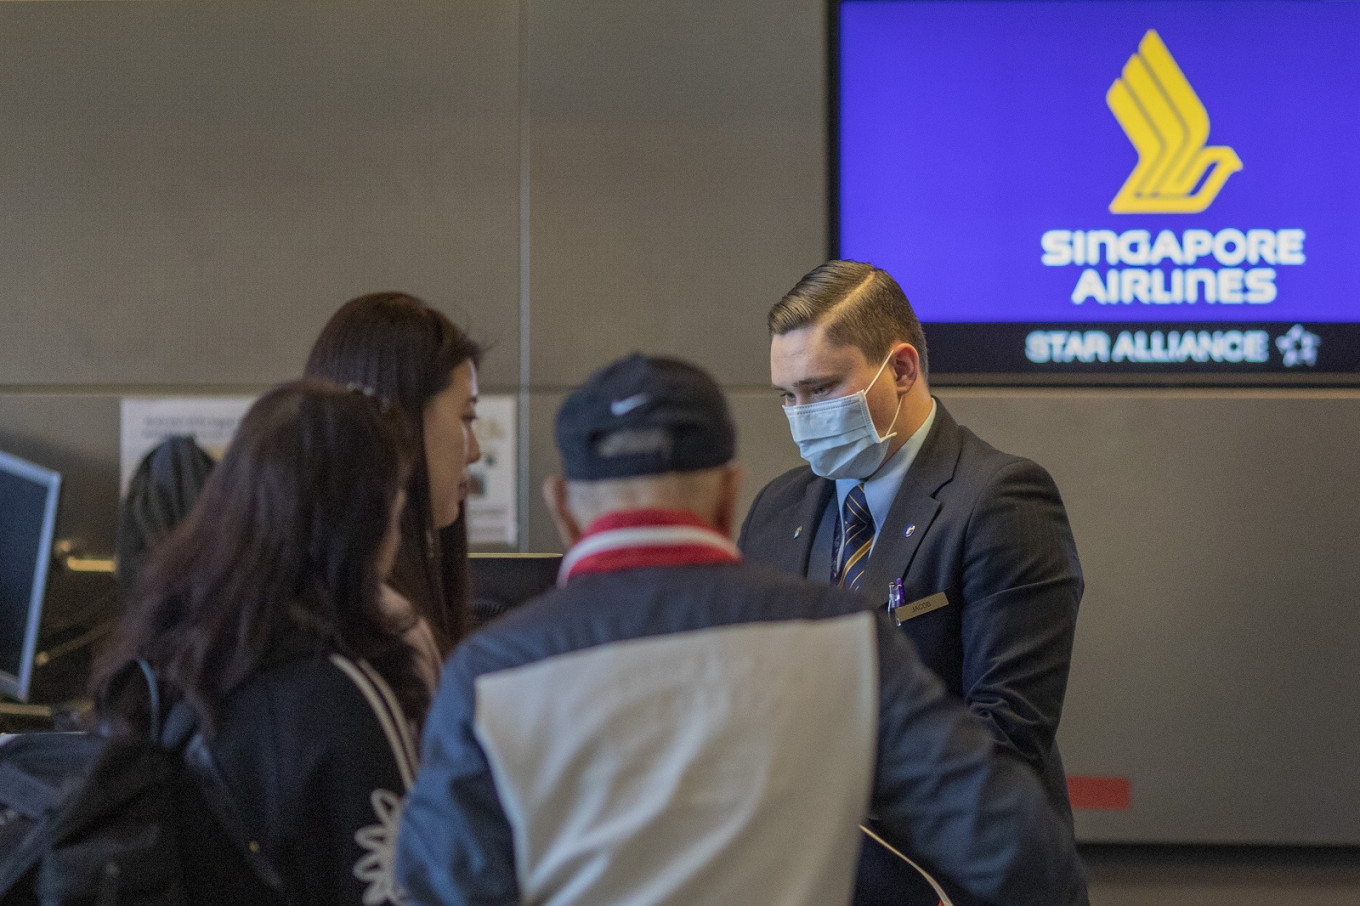 Singapore Airlines grounds most of its fleet as coronavirus poses 'greatest challenge'